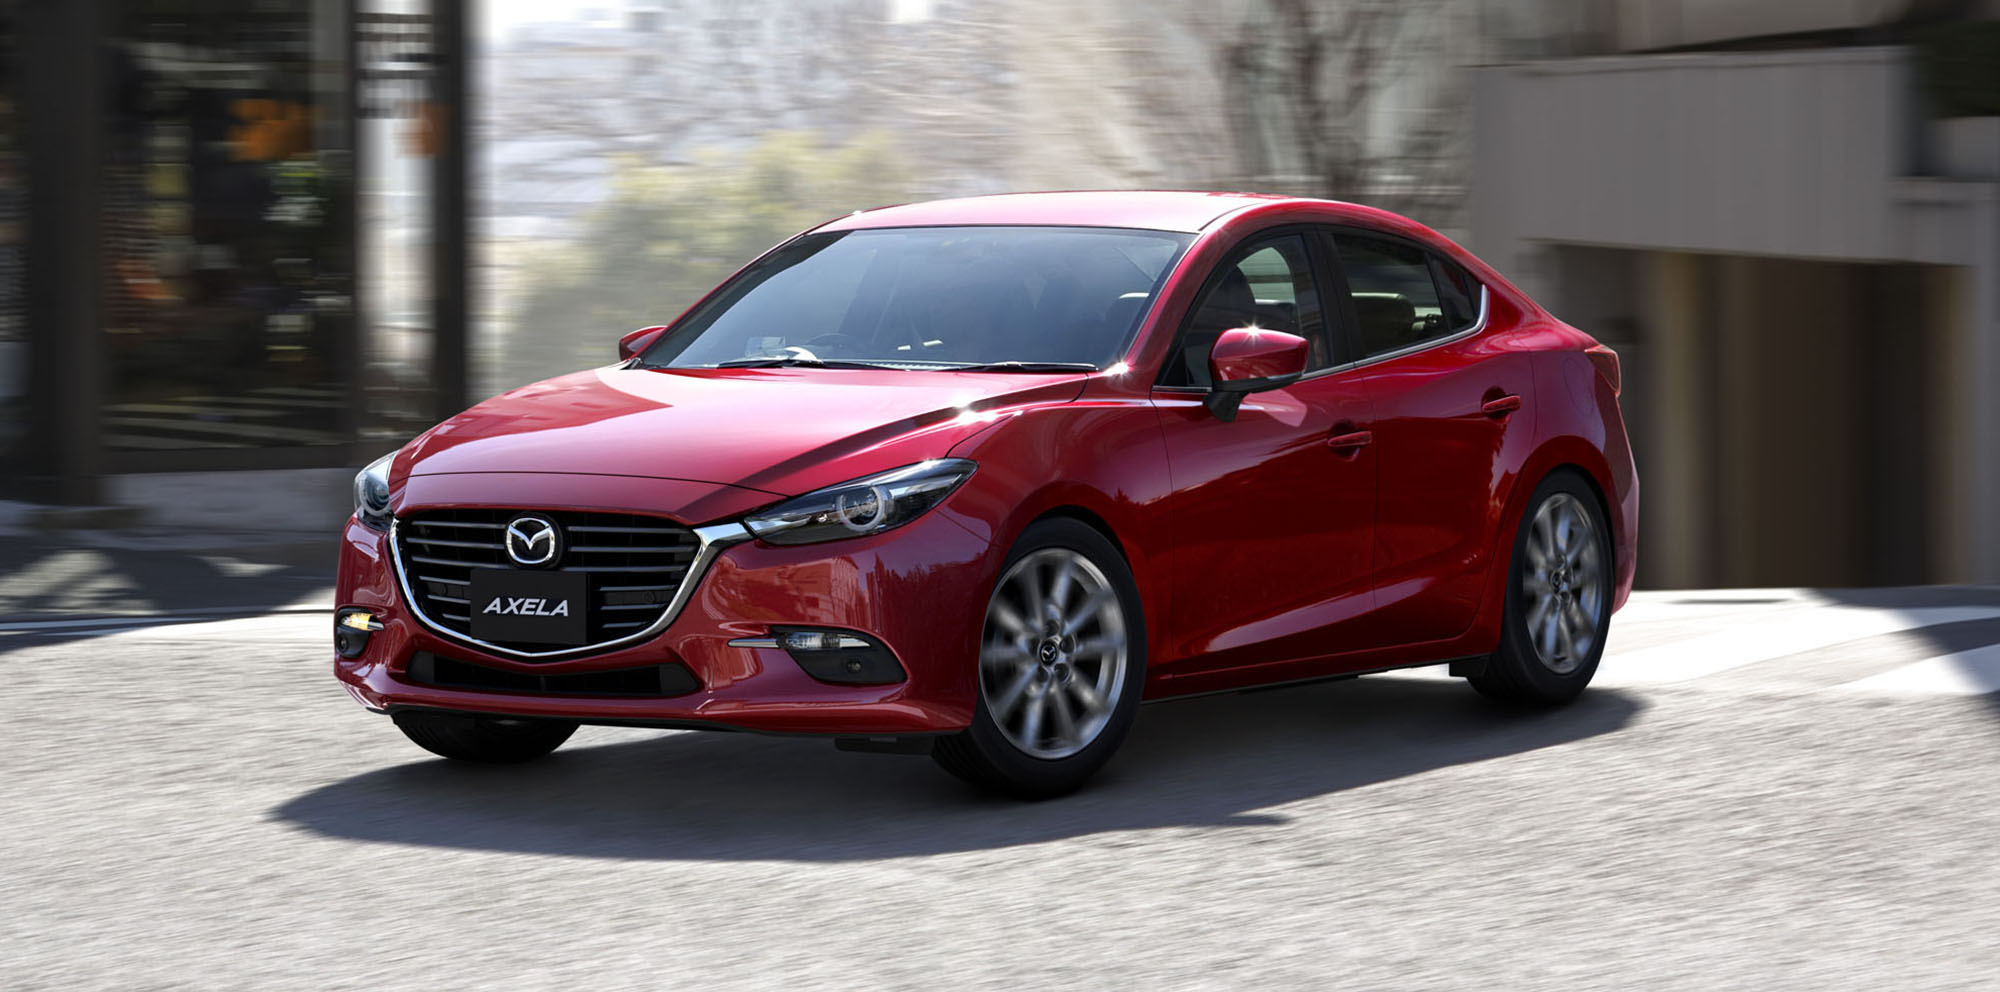 2016 mazda 3 facelift goes official australian debut coming soon photos caradvice. Black Bedroom Furniture Sets. Home Design Ideas